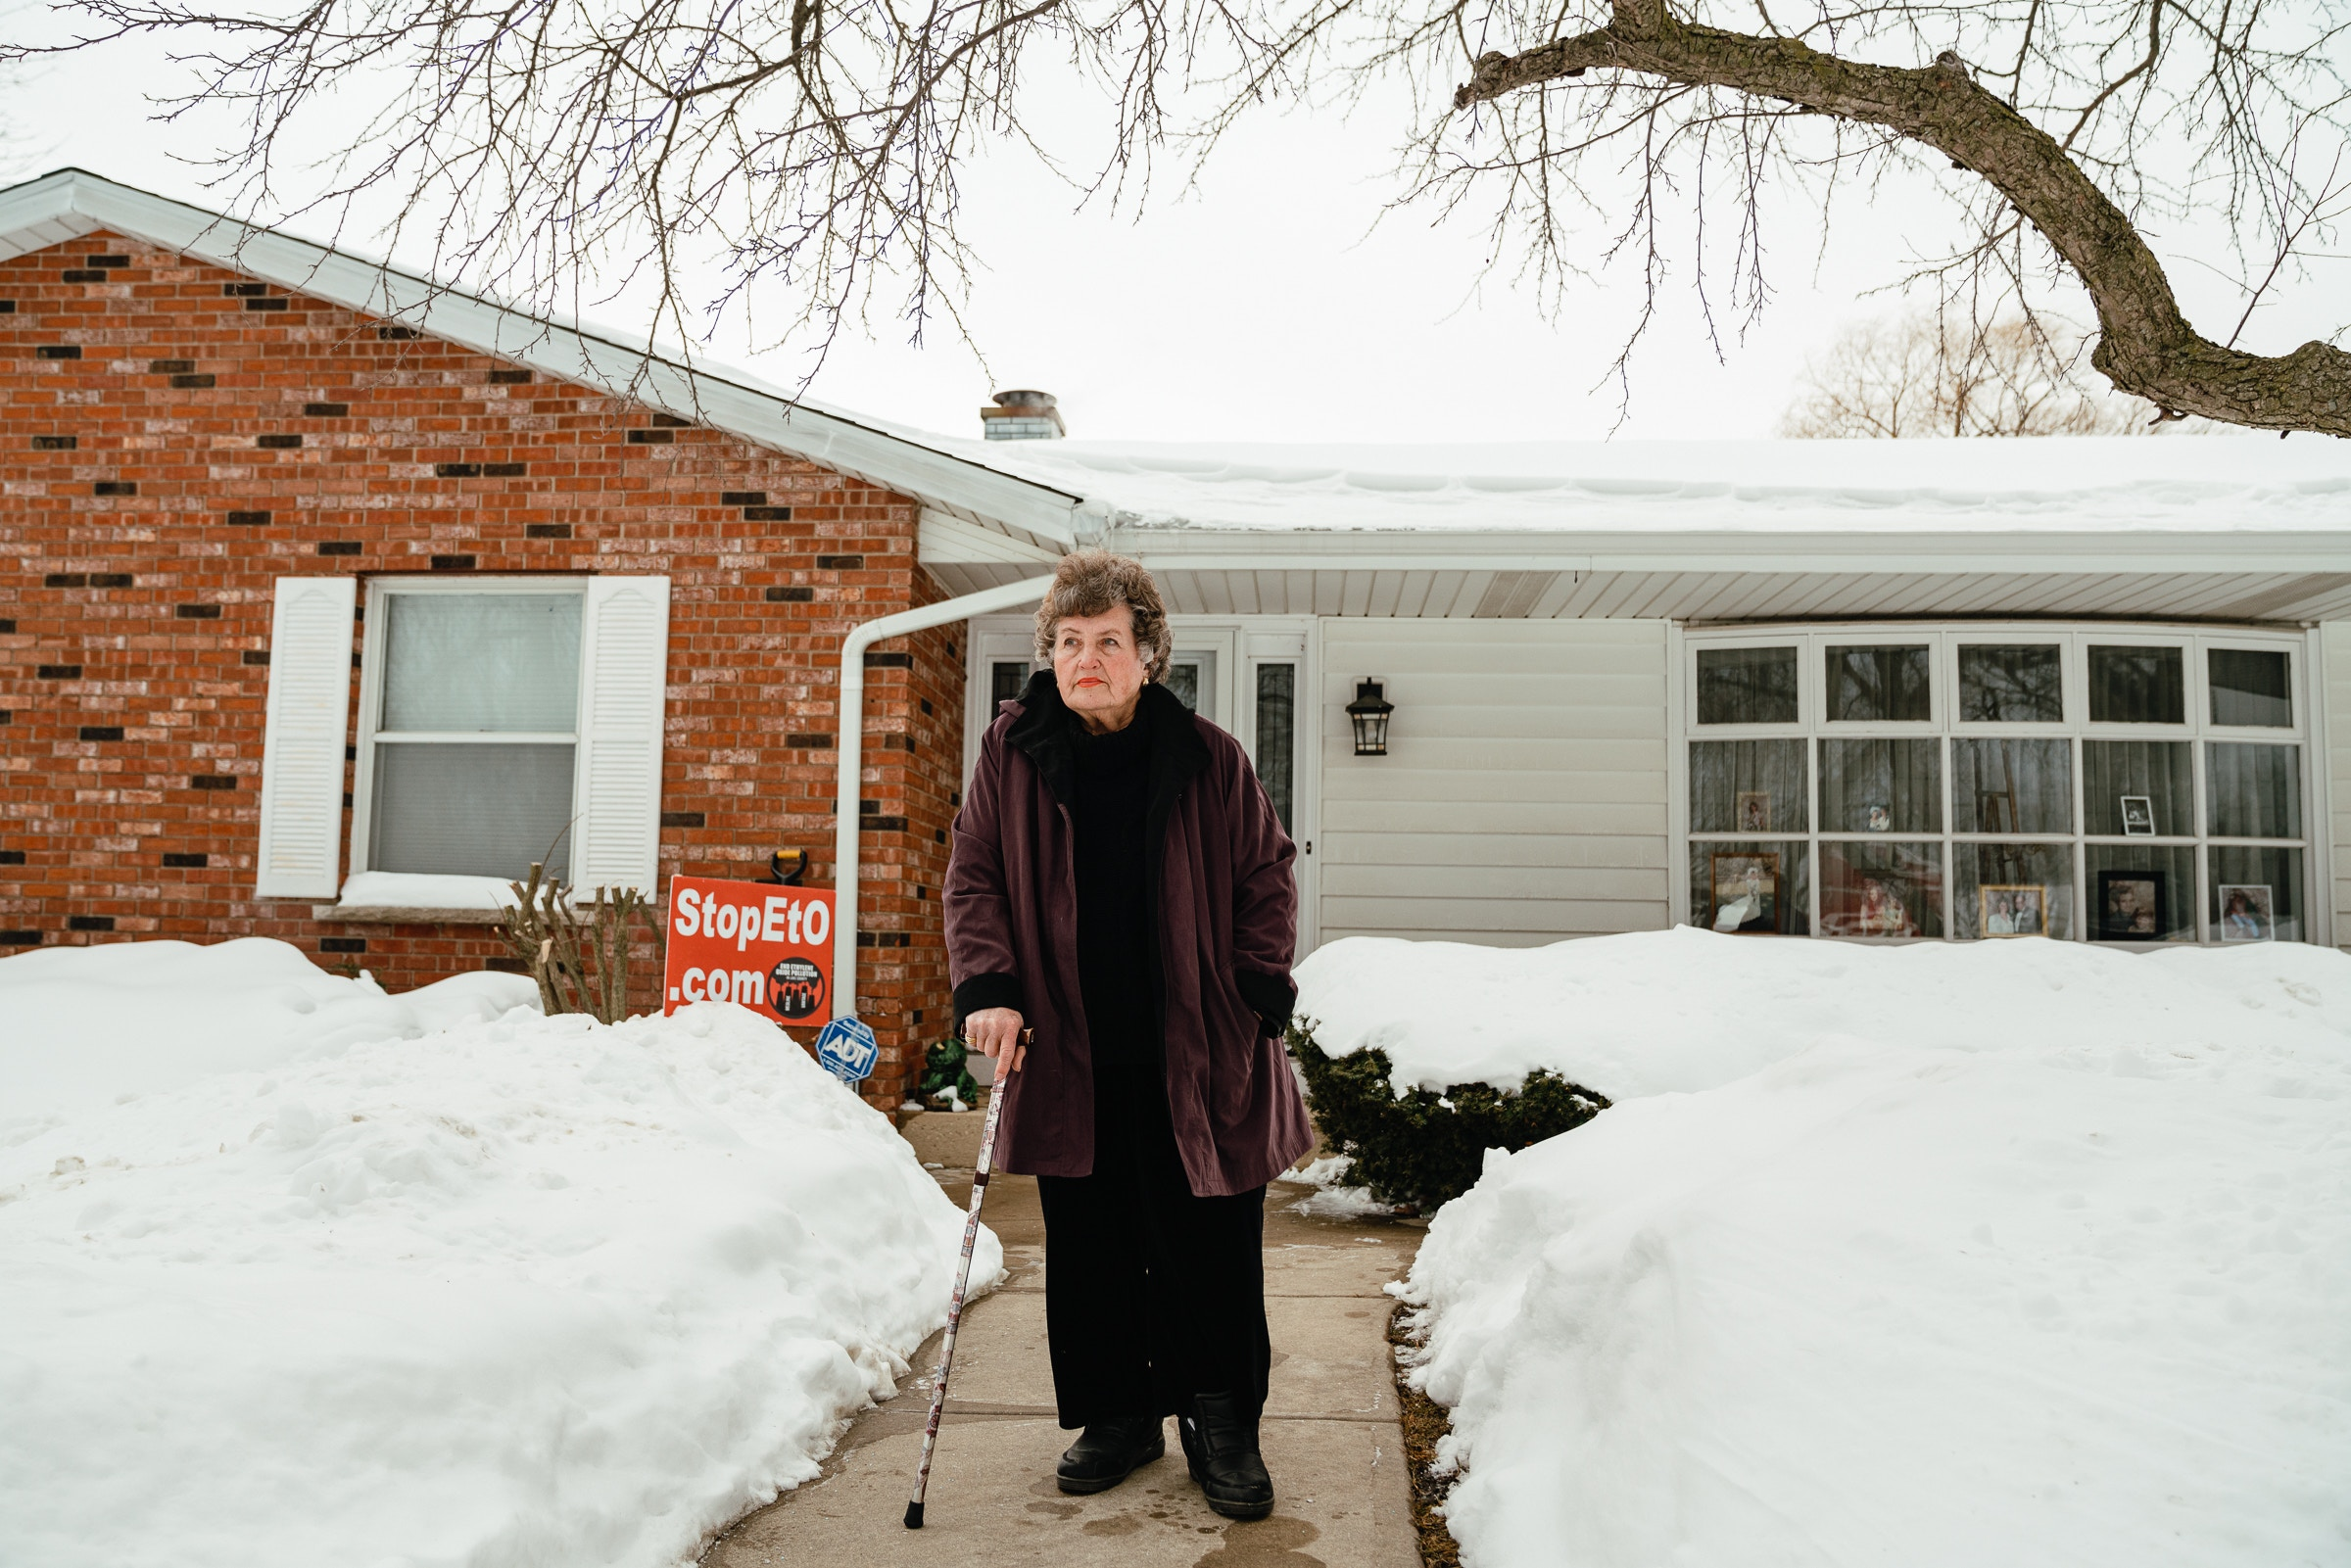 Millie Corder outside of her in Wadsworth, IL on February 21, 2021. Millie's home is located about 3 miles from the Vantage Specialty Plant. Jamie Kelter Davis for The Intercept.